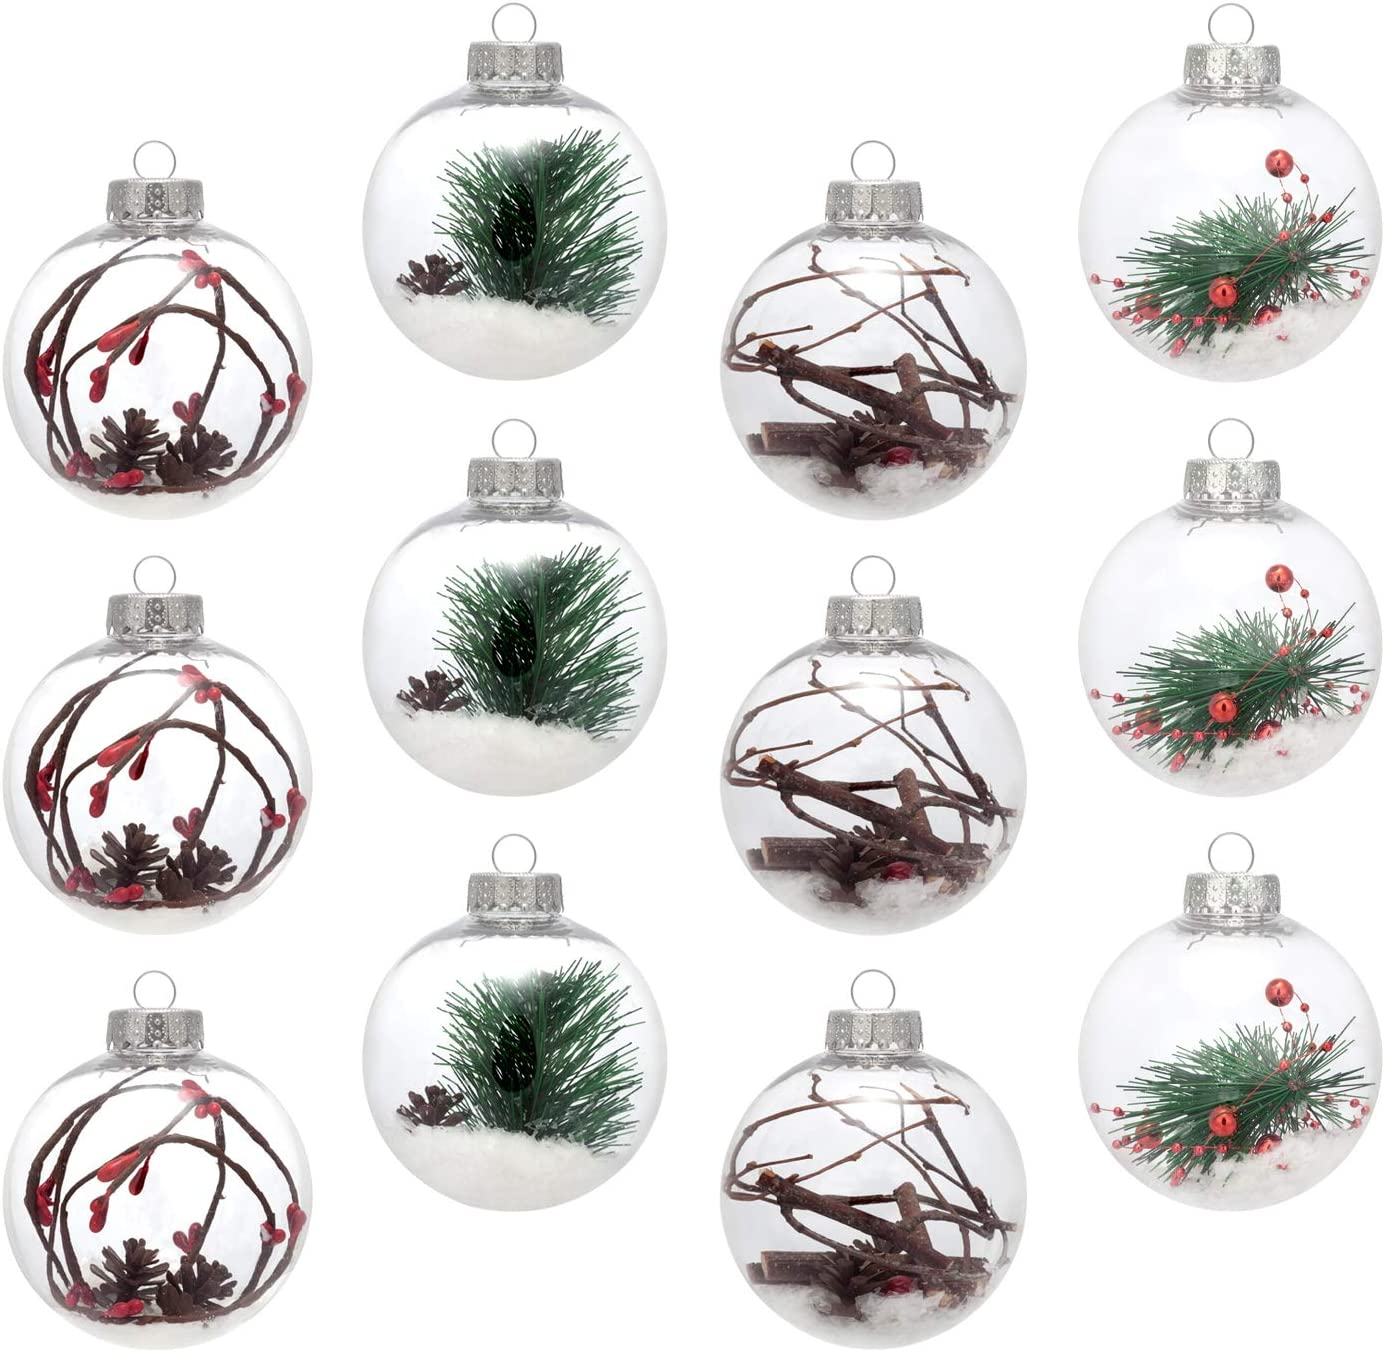 AMS 3.14''/12ct Christmas Ball Ornaments Shatterproof Clear Plastic Decorative Xmas Balls Baubles Set with Stuffed Delicate Decoration (80mm)